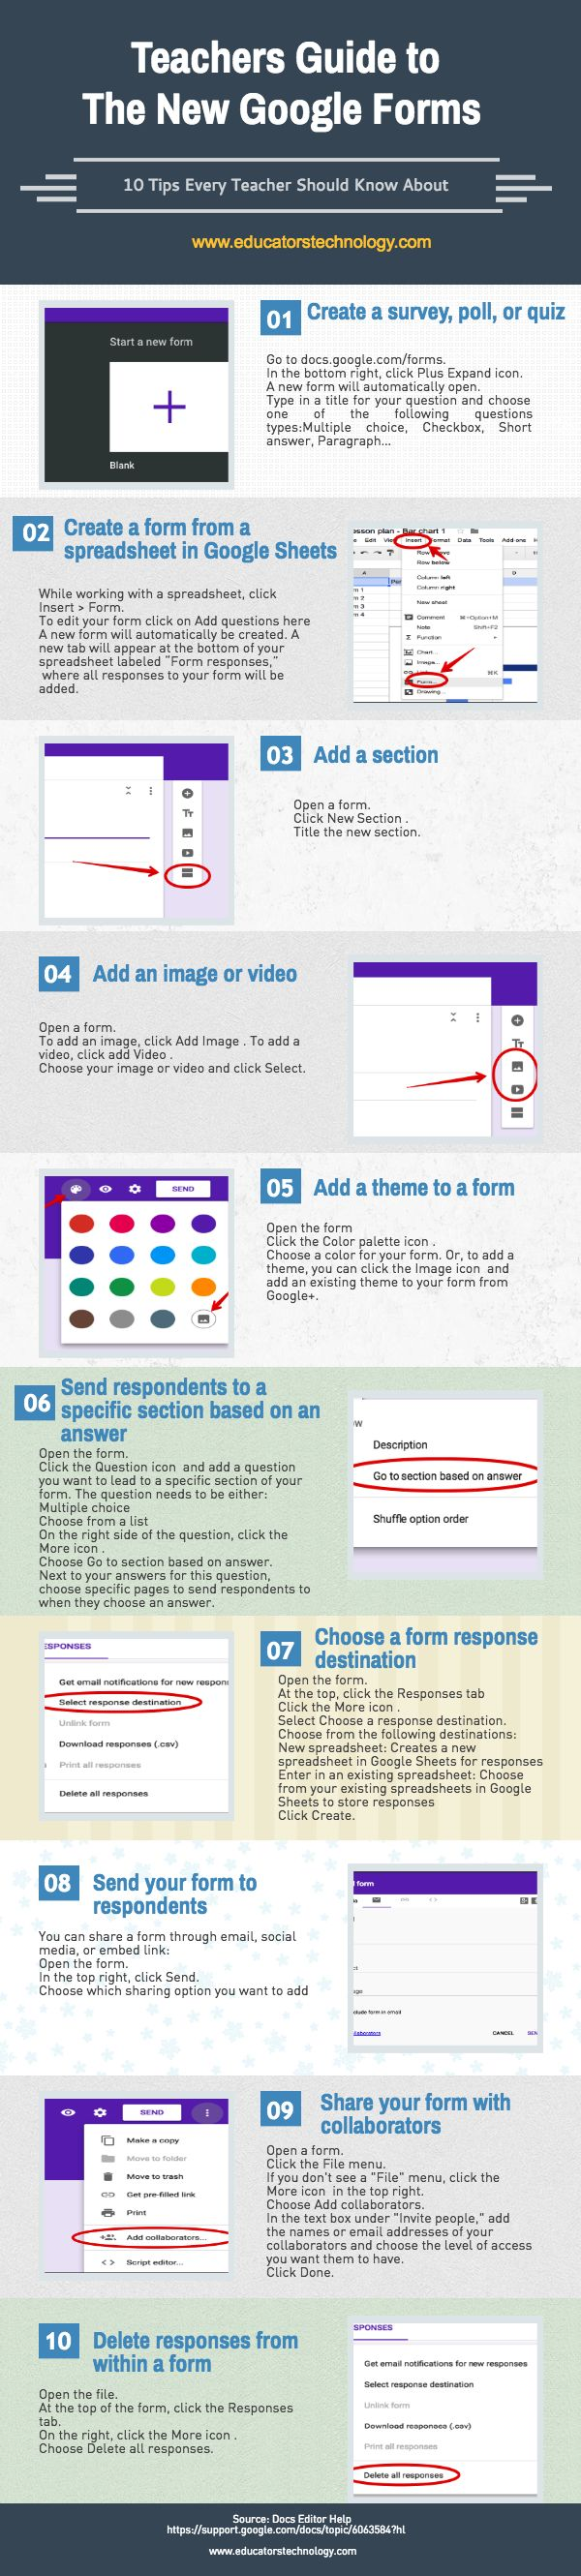 Teachers Visual Guide to The New Google Forms | Educational Technology and Mobile Learning | Bloglovin'